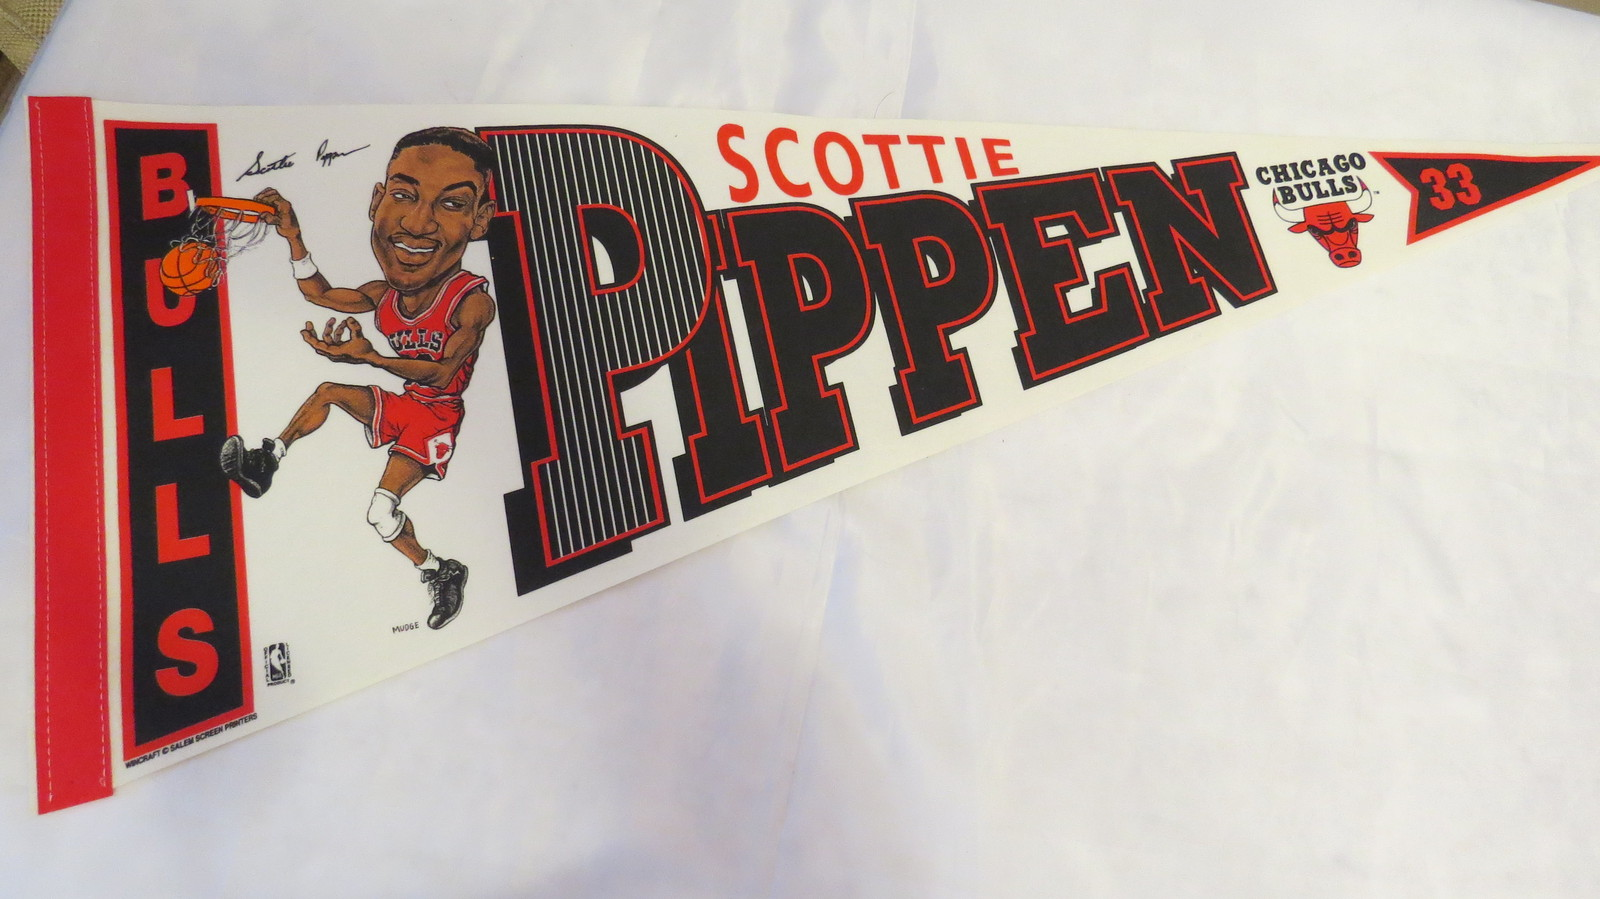 Primary image for Chicago Bulls Pennant - Scotty Pippen Cartoon Graphic - 1990s